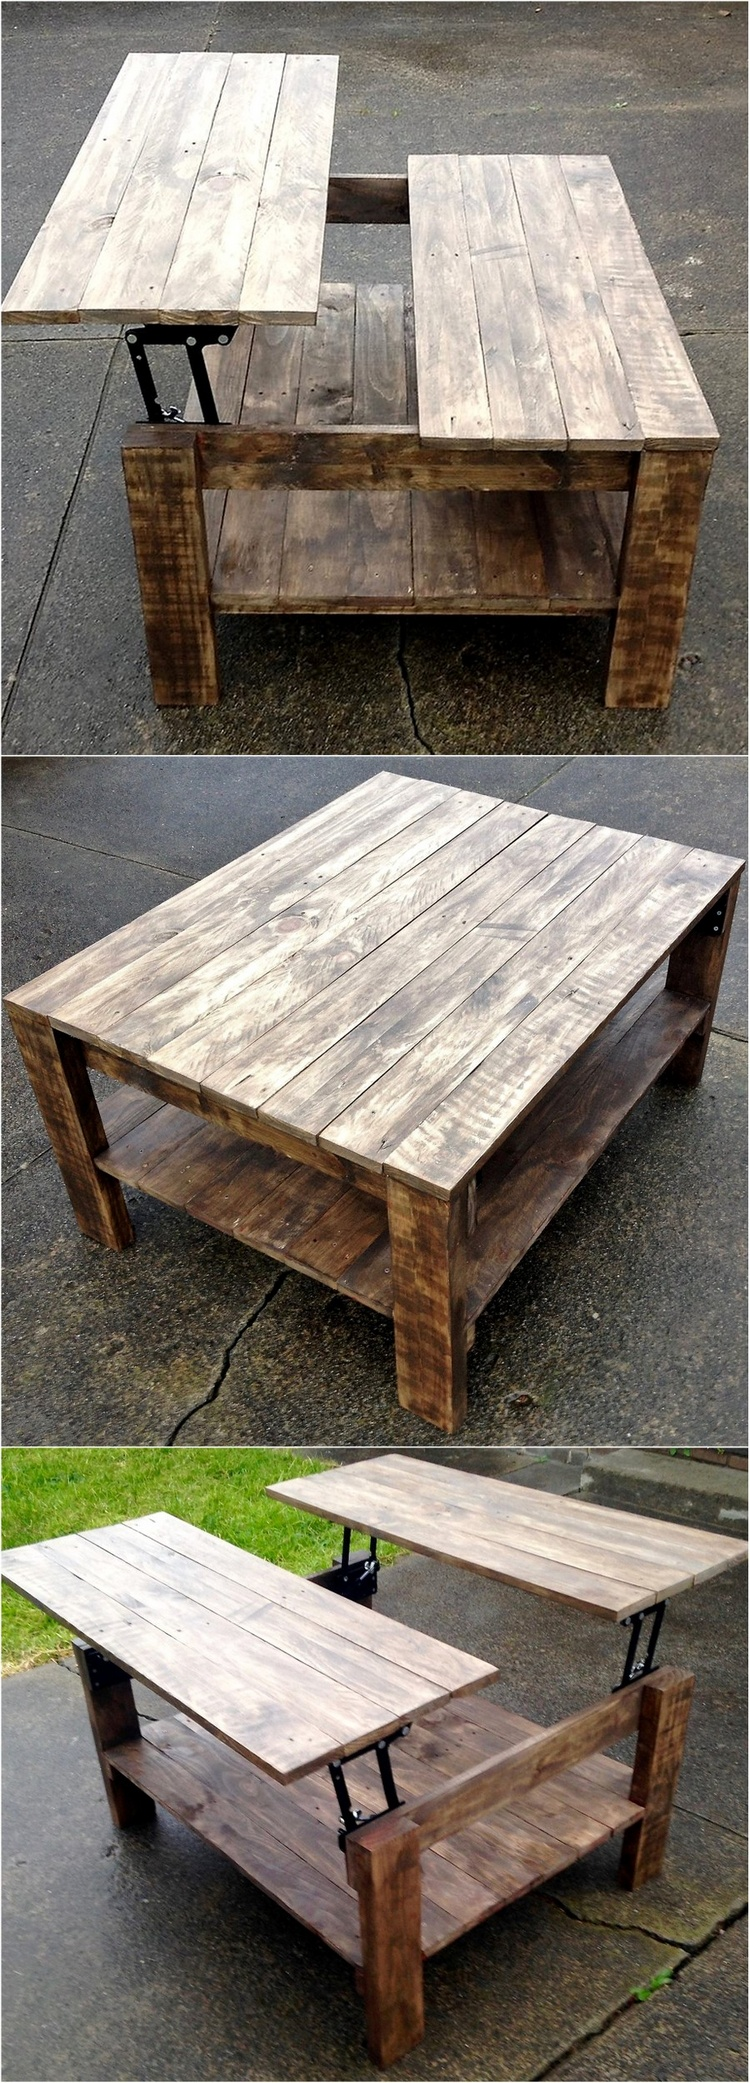 Ingenious ideas for wooden pallet reusing pallet ideas for What to make out of those old wood pallets